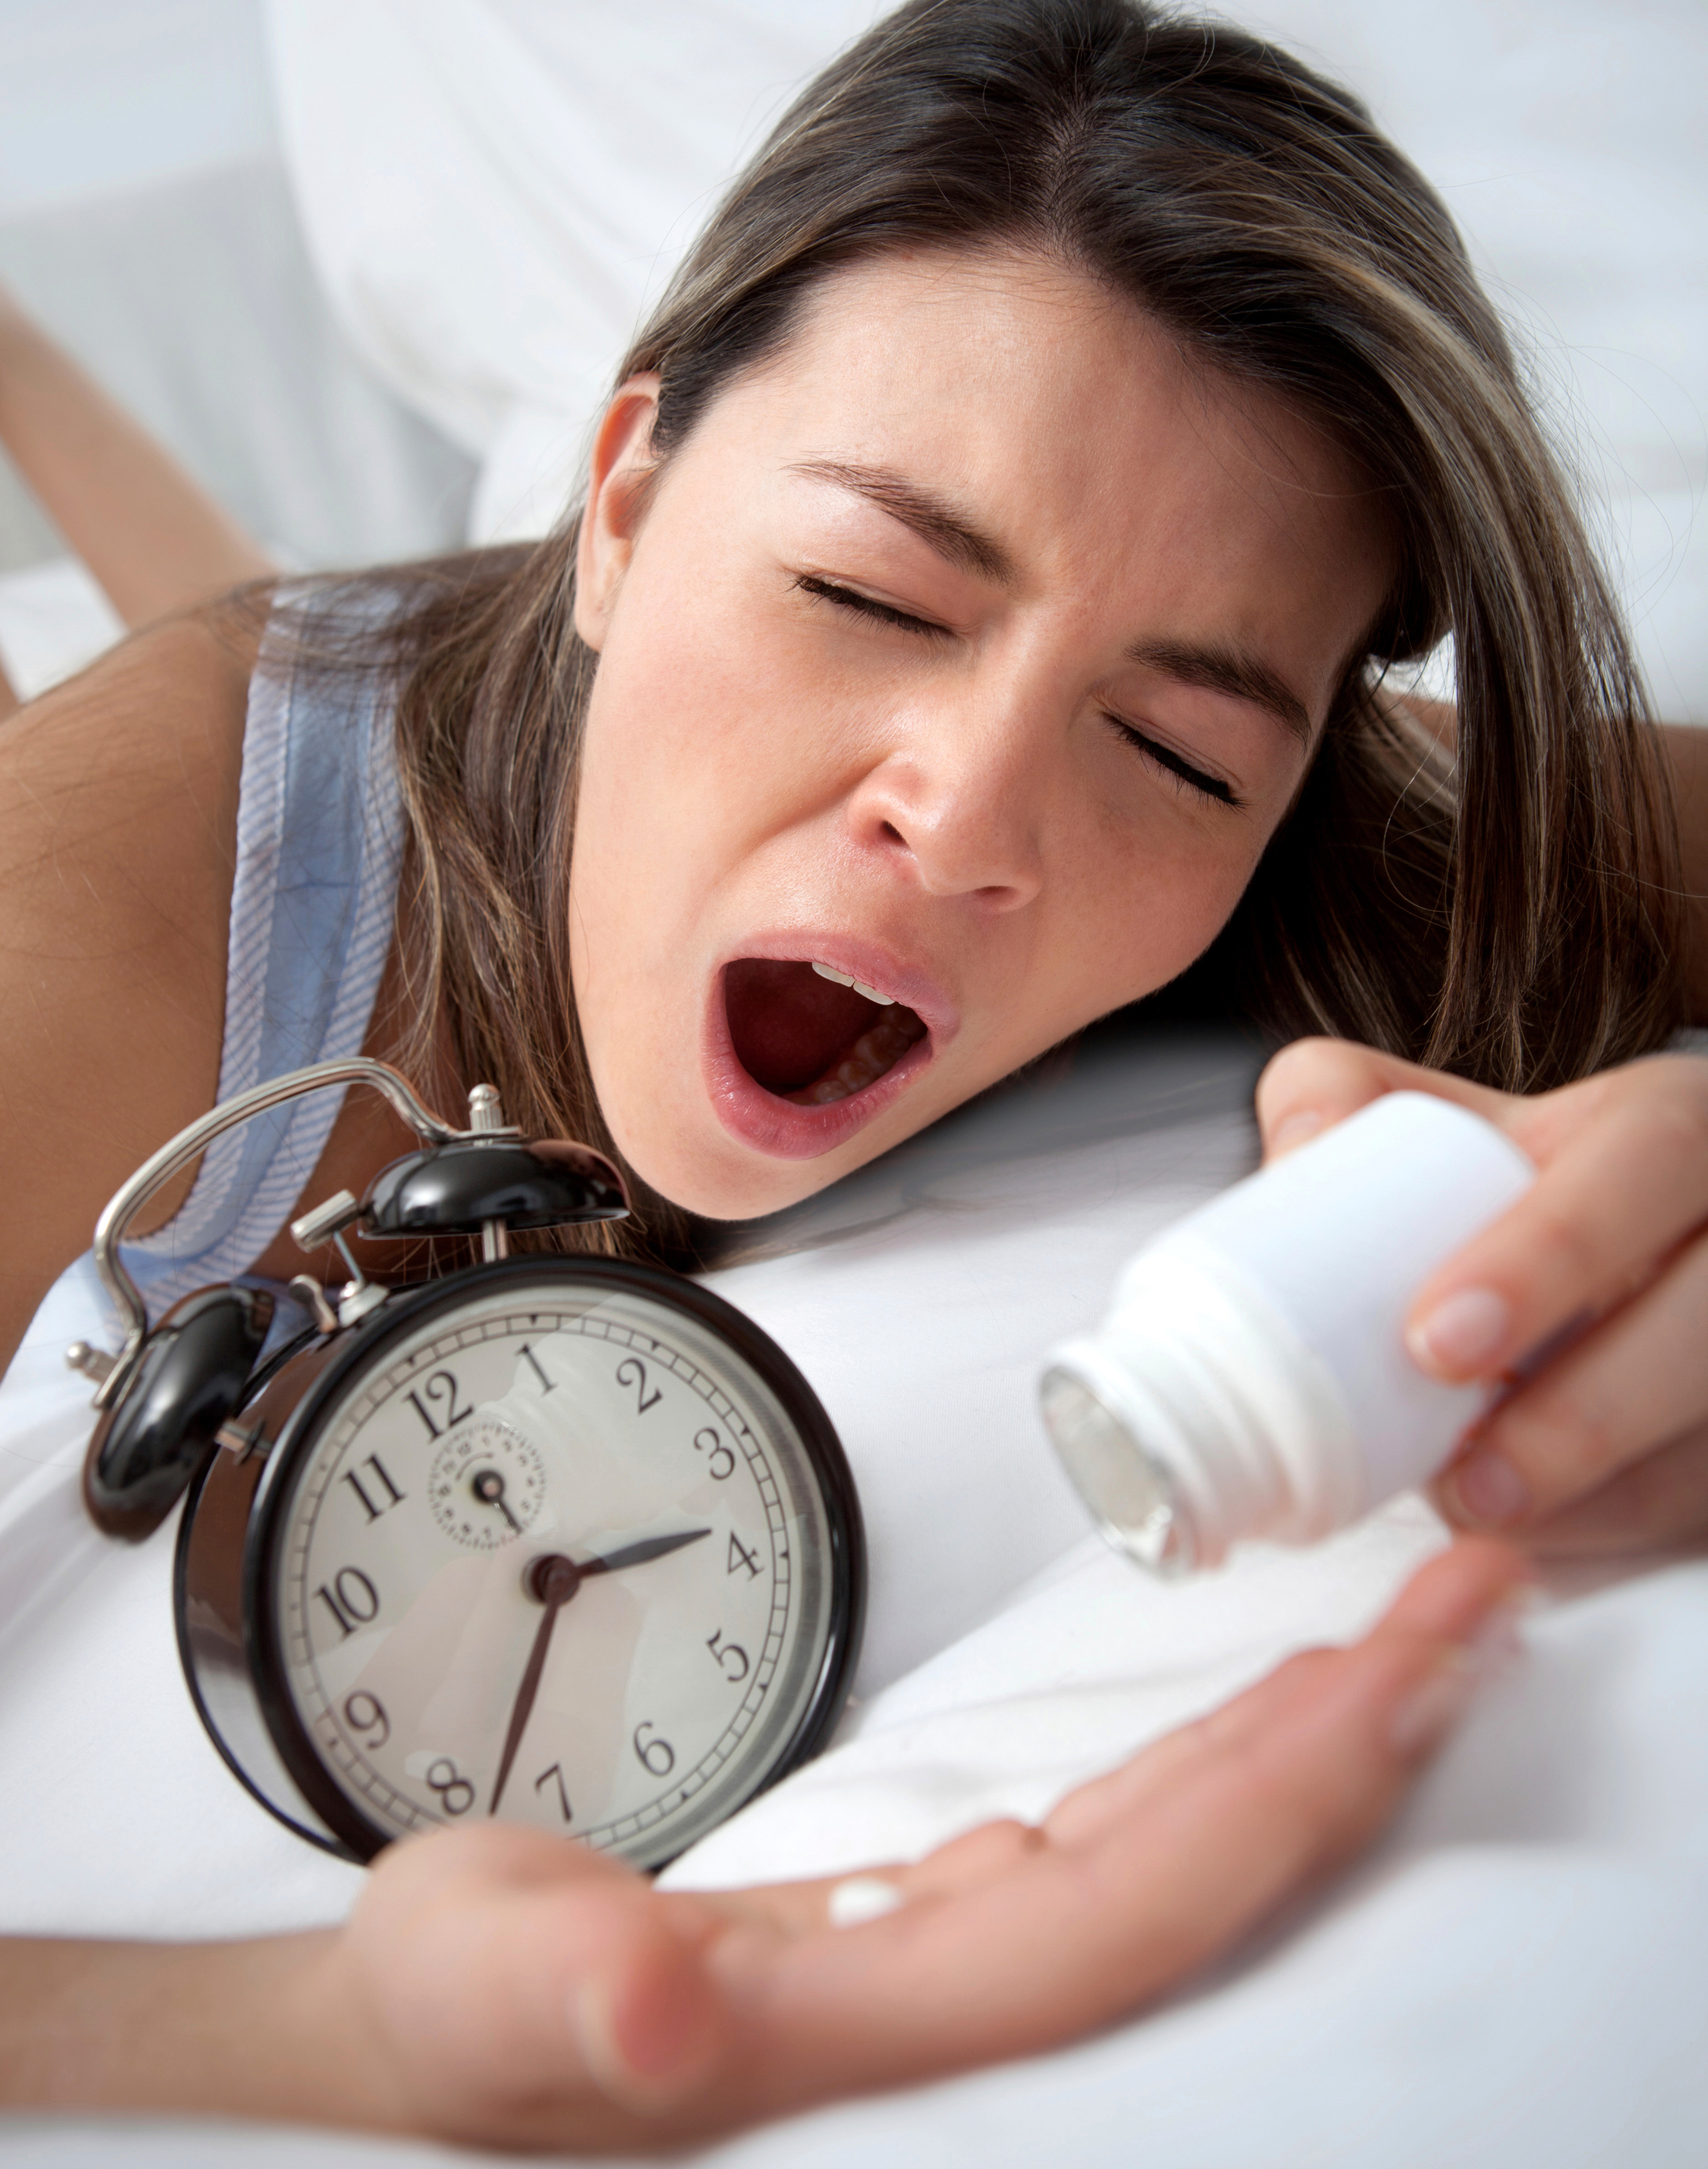 Avoid the sleeping pills that destroy your health